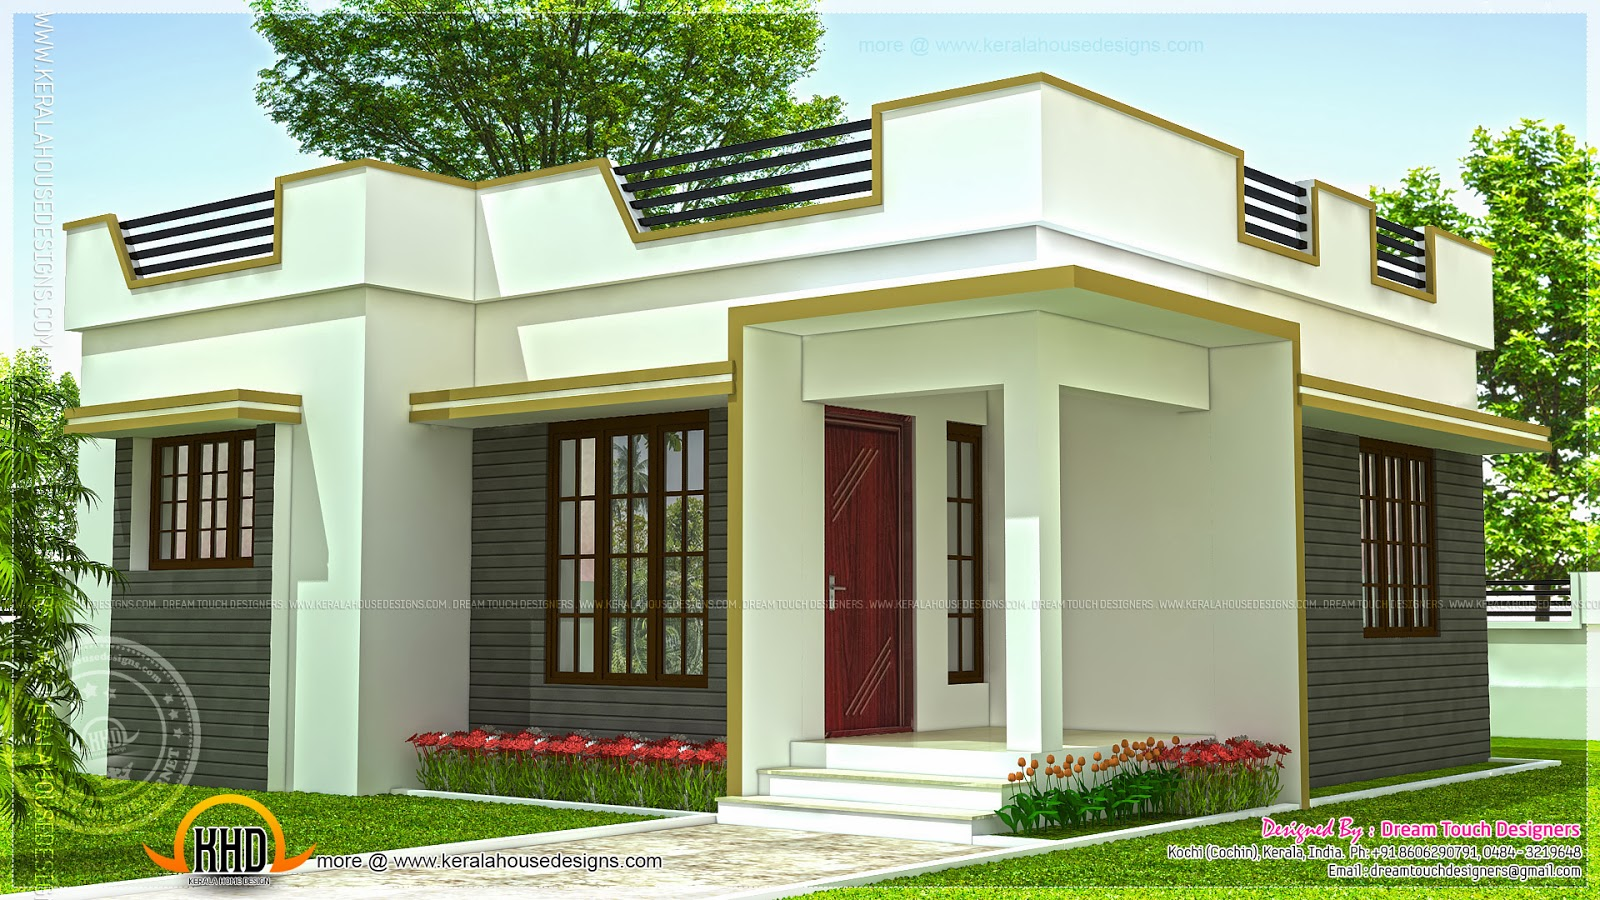 Thoughtskoto for Small house plans